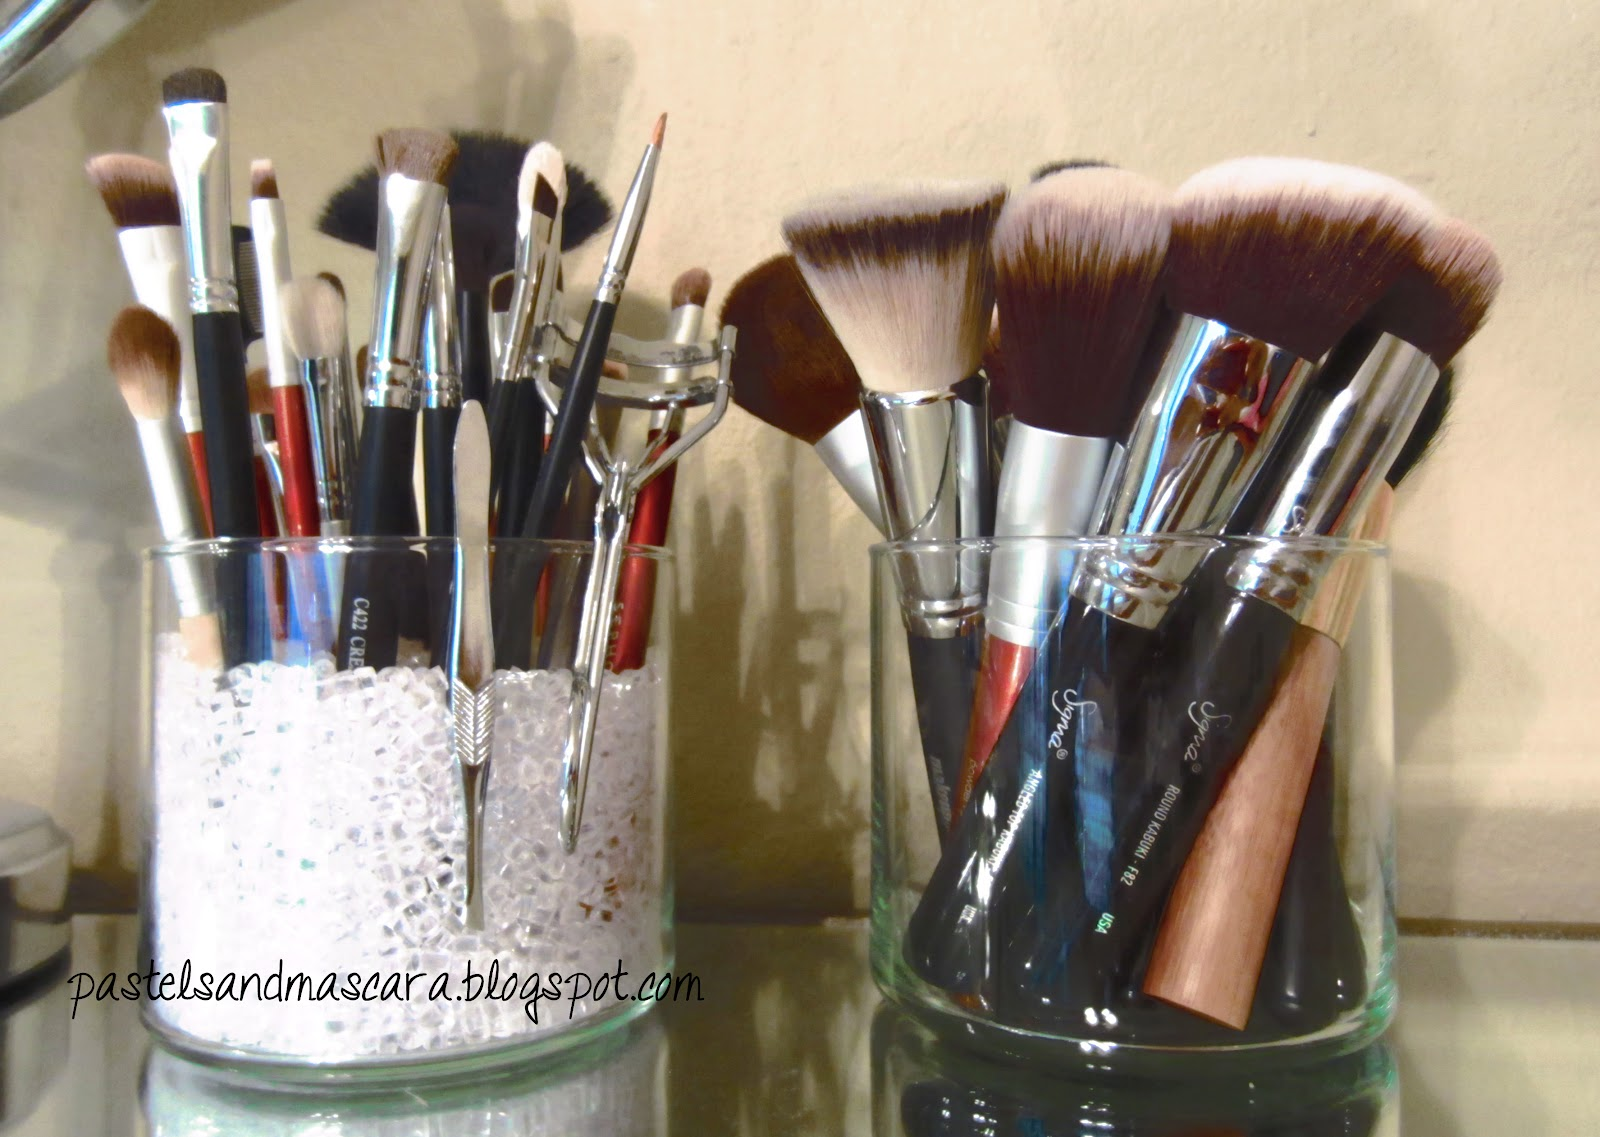 Mallory Blogs: diy: makeup brush holder